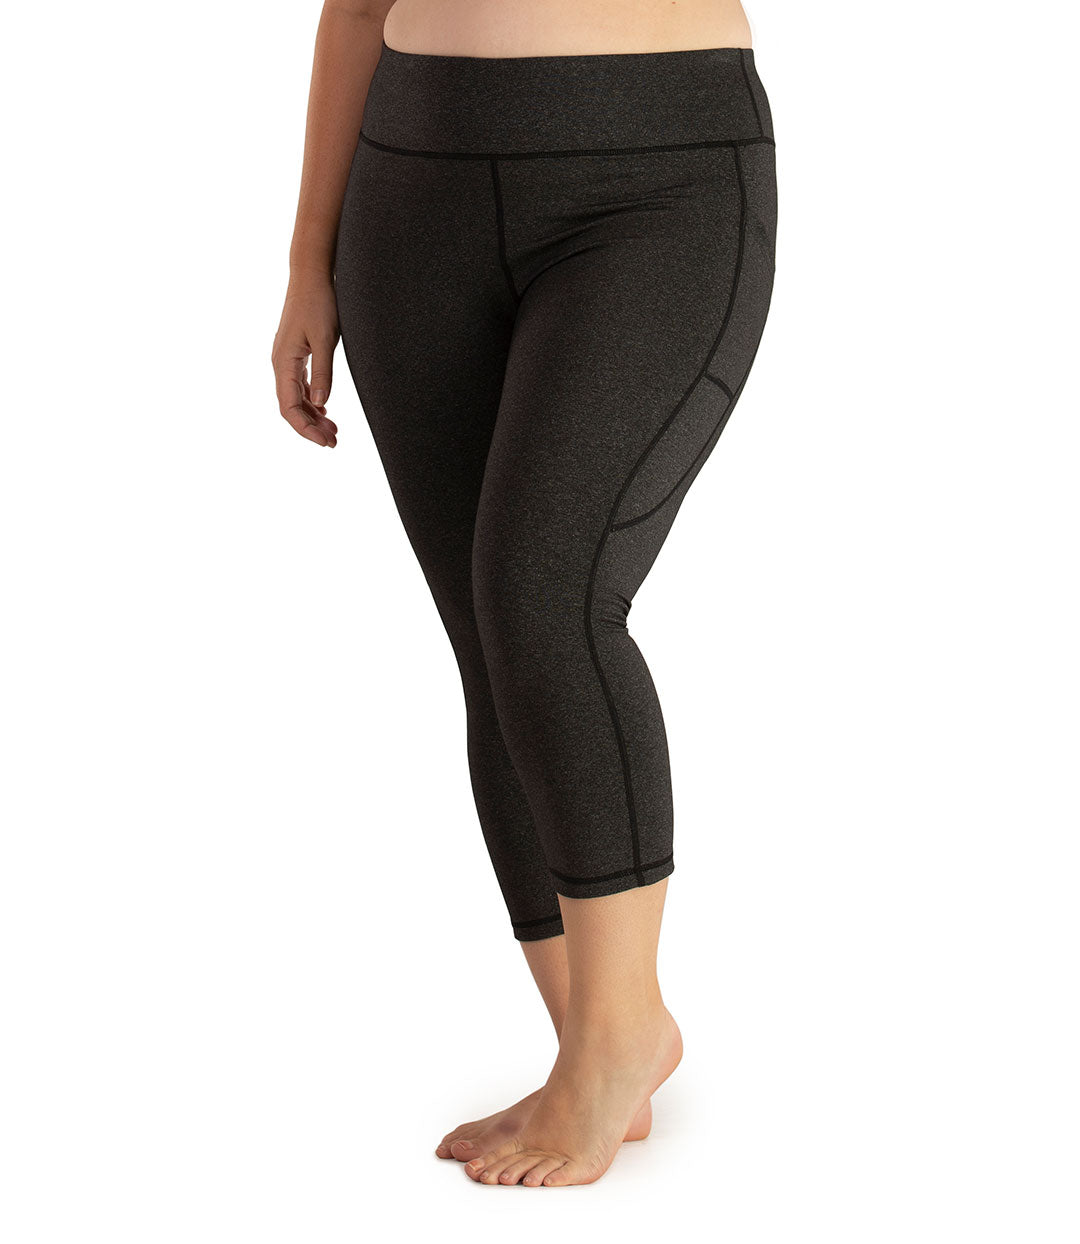 JunoStretch Side Pocket Capris Classic Colors-Bottoms Capris-Odki Sport-XL-Heather Charcoal-JunoActive